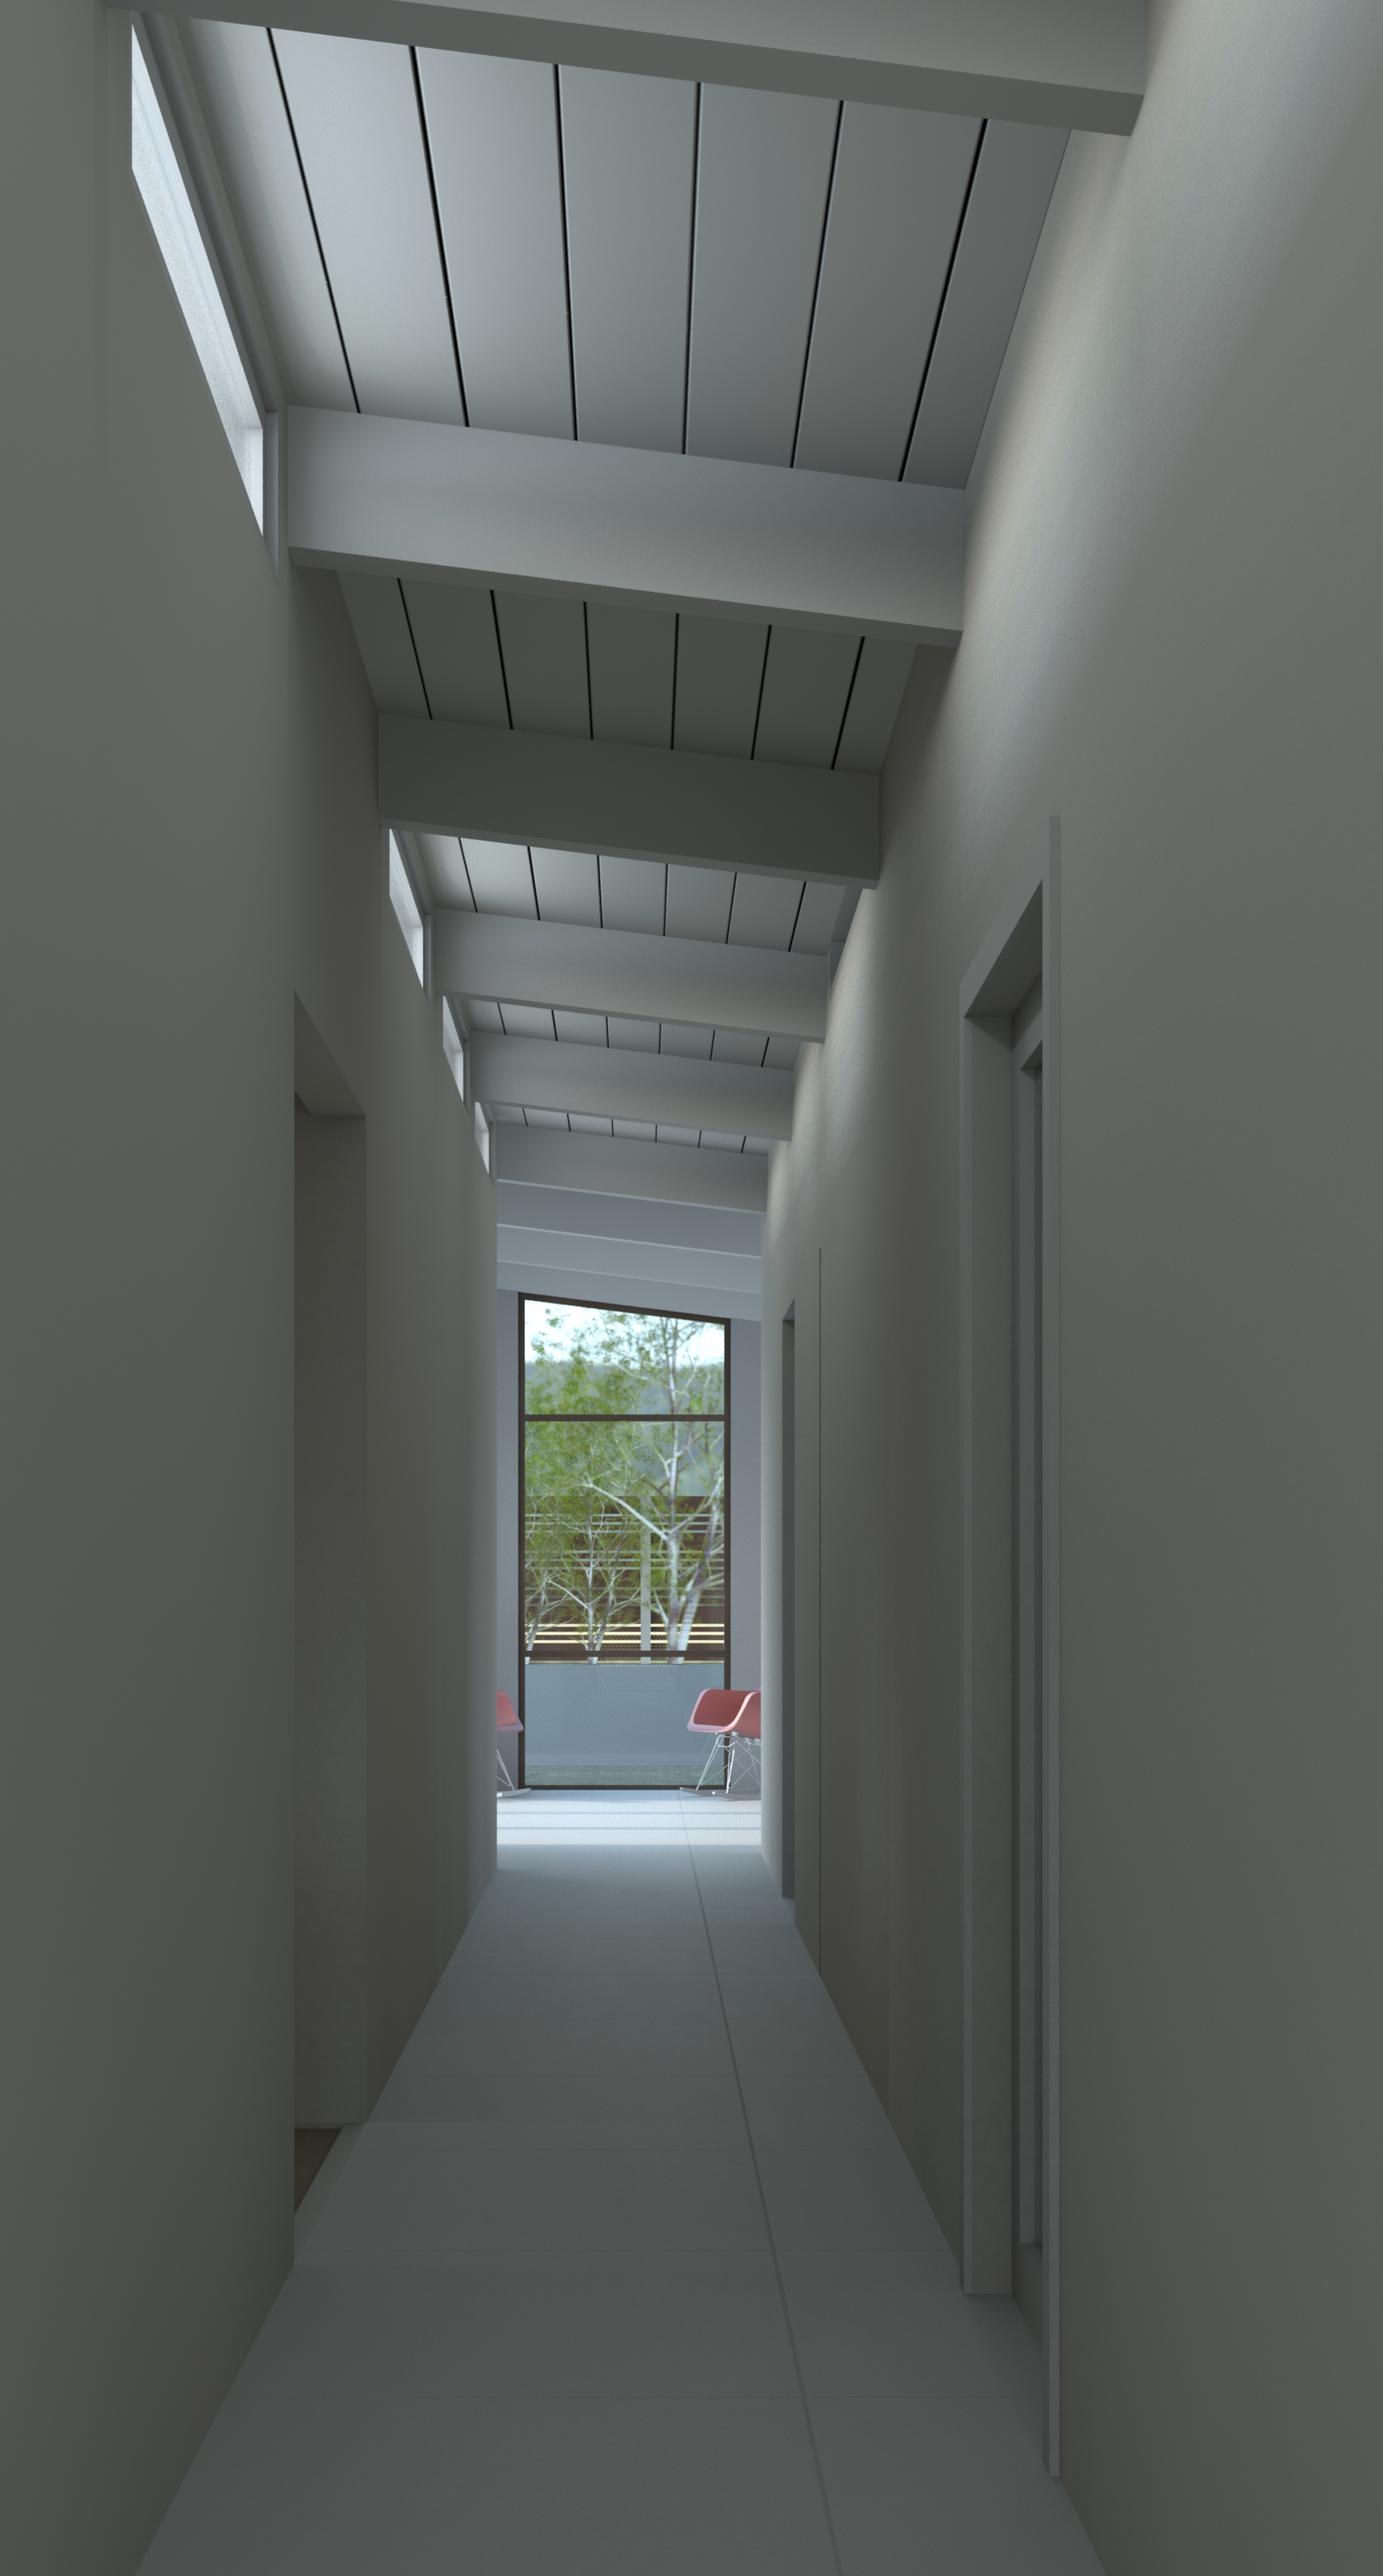 KP-01 _3D_View_-_Master_Bedroom_Hallway_From_Garage.png